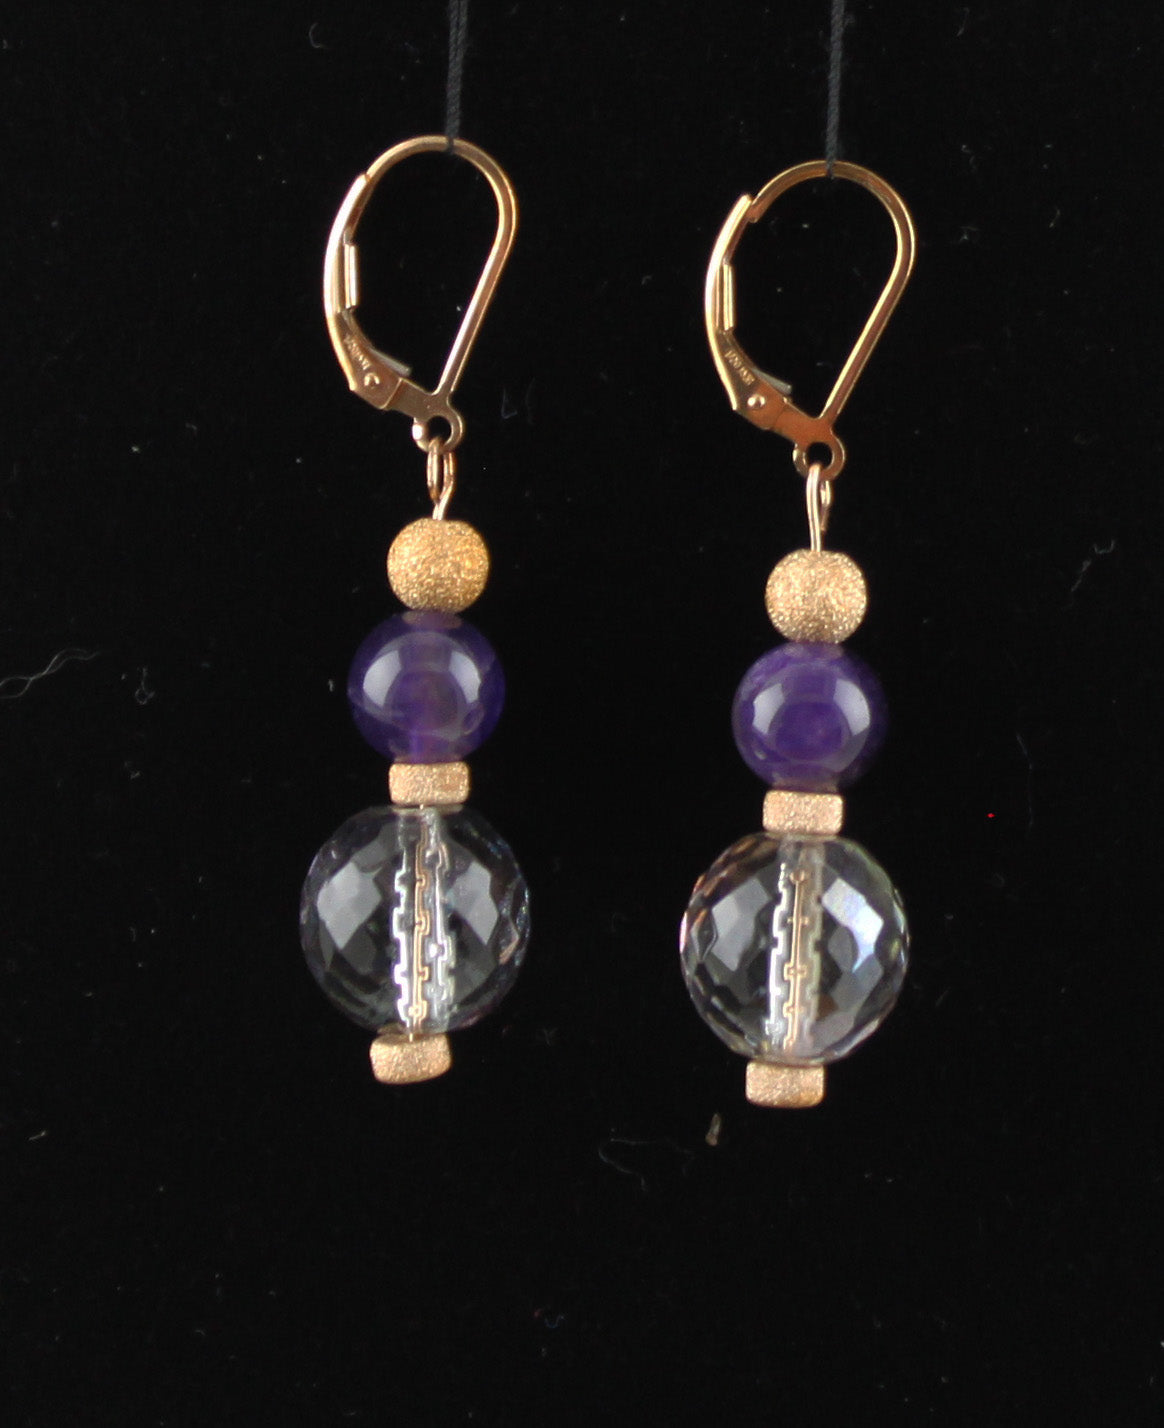 Dark Amethyst and Czech Glass Earrings